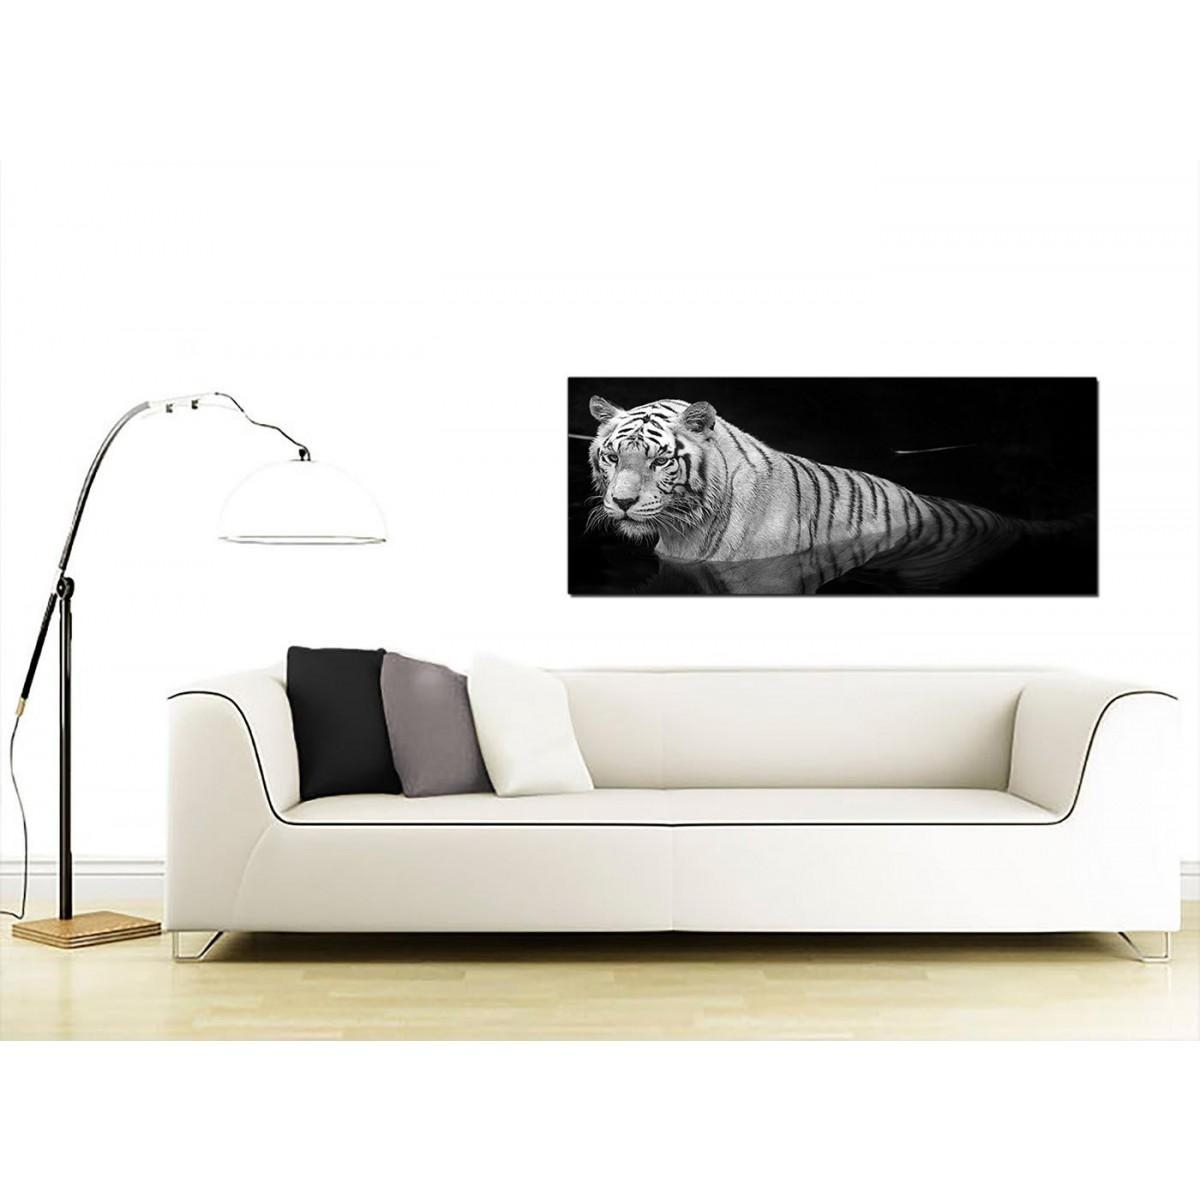 Large Black And White Canvas Wall Art Of A Tiger Throughout Large Black And White Wall Art (Image 11 of 20)